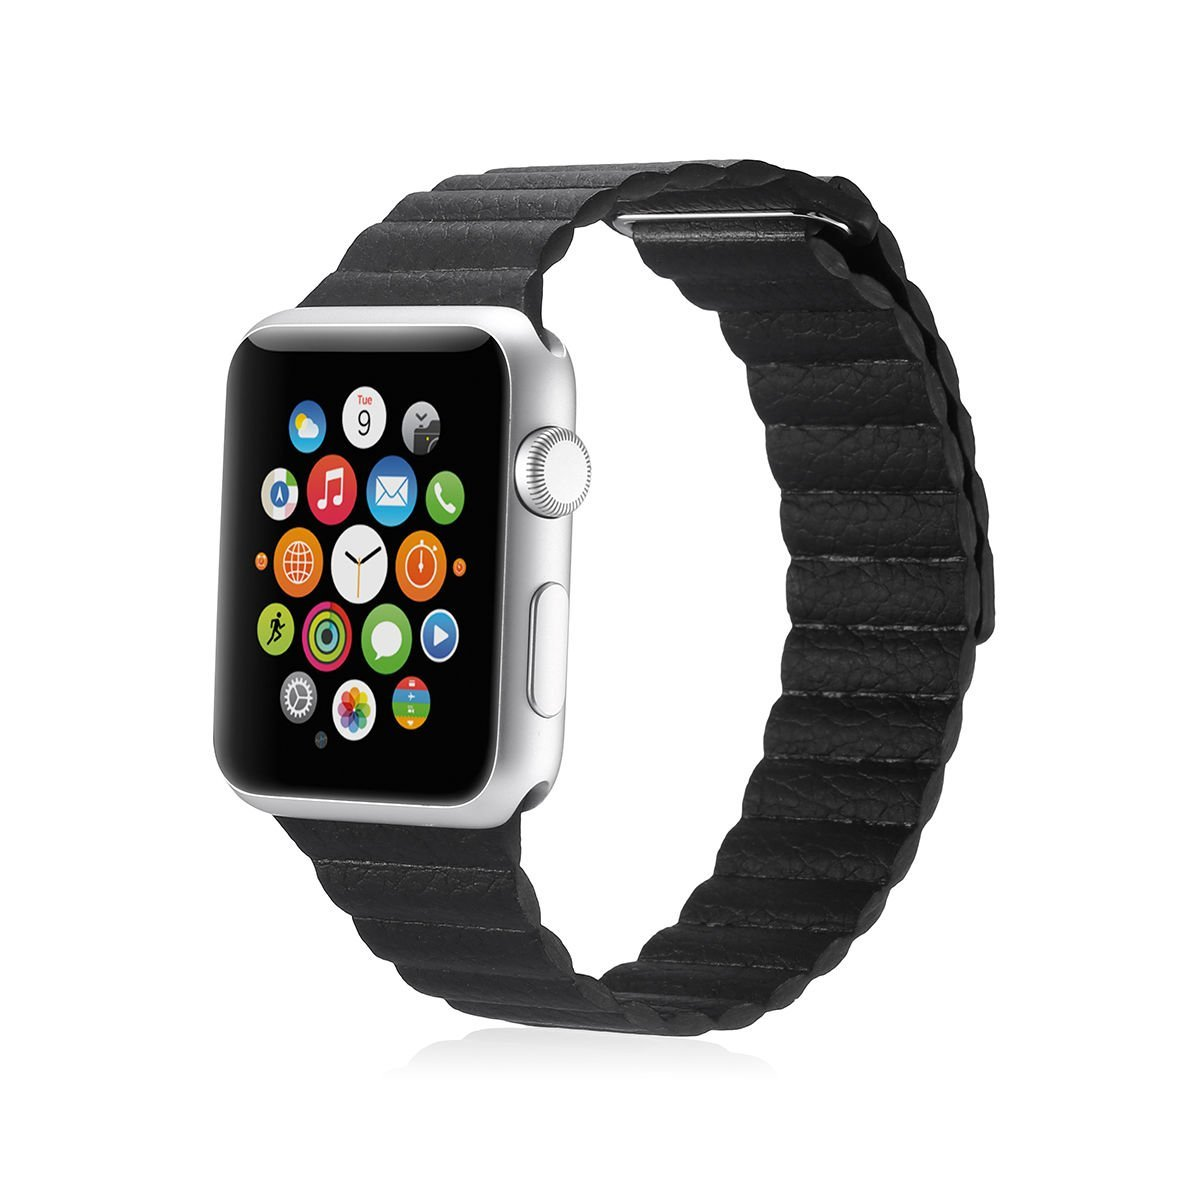 Apple iWatch Band, Fit to Series 1 and Series 2, Leather Bracelet with Magnetic Adjustable Closure, 42mm, Leather Loop Band, Black